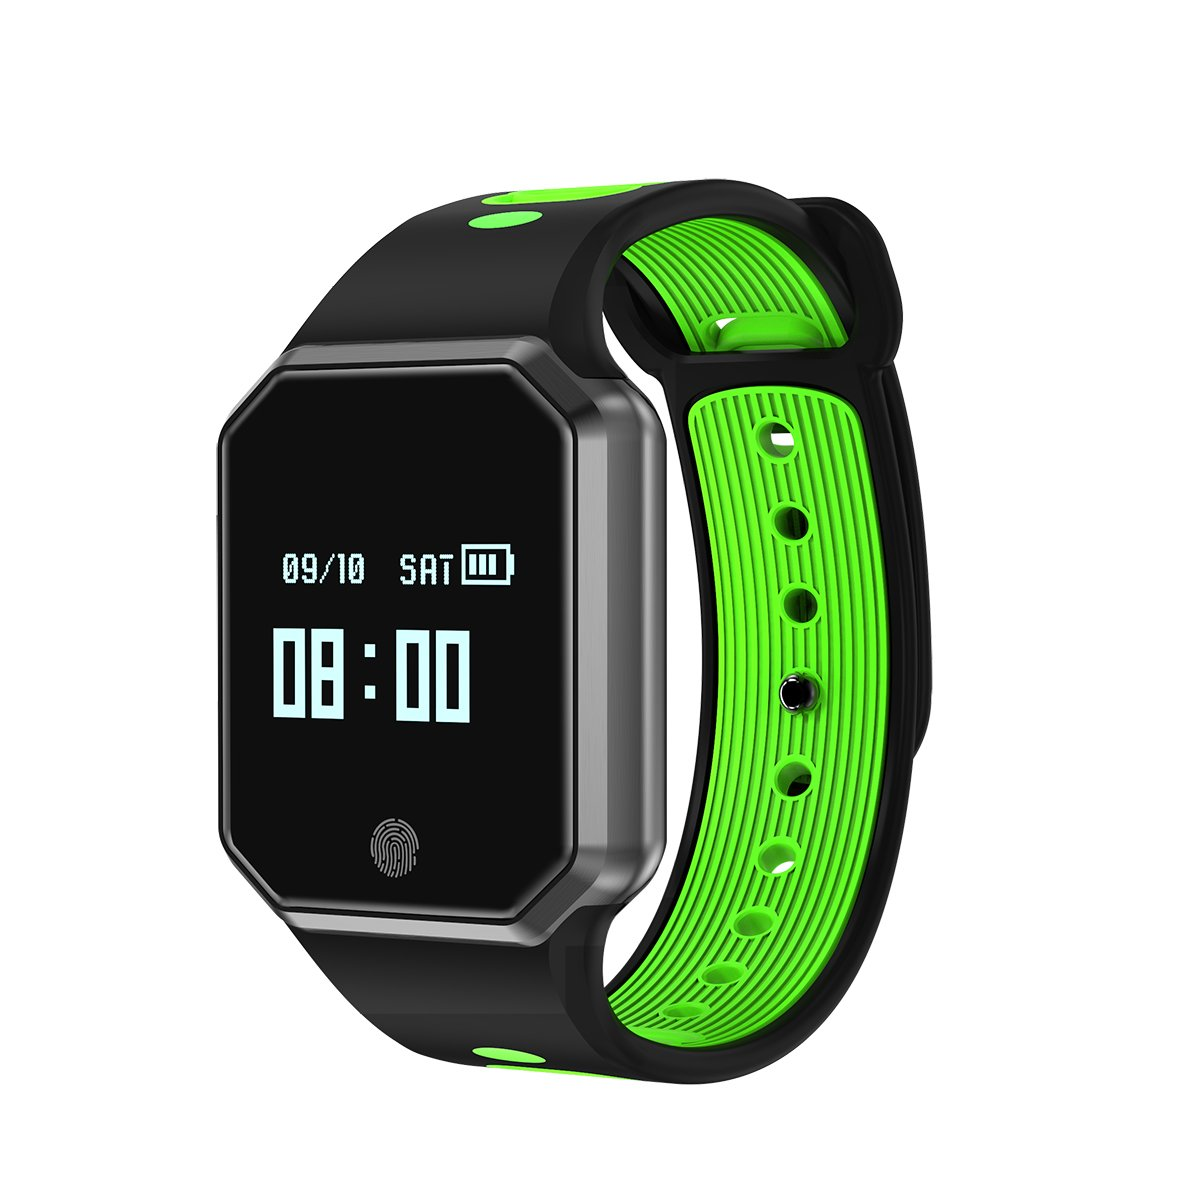 Amazon.com: Hangang Bluetooth Smartwatch/Fitness Tracker ...